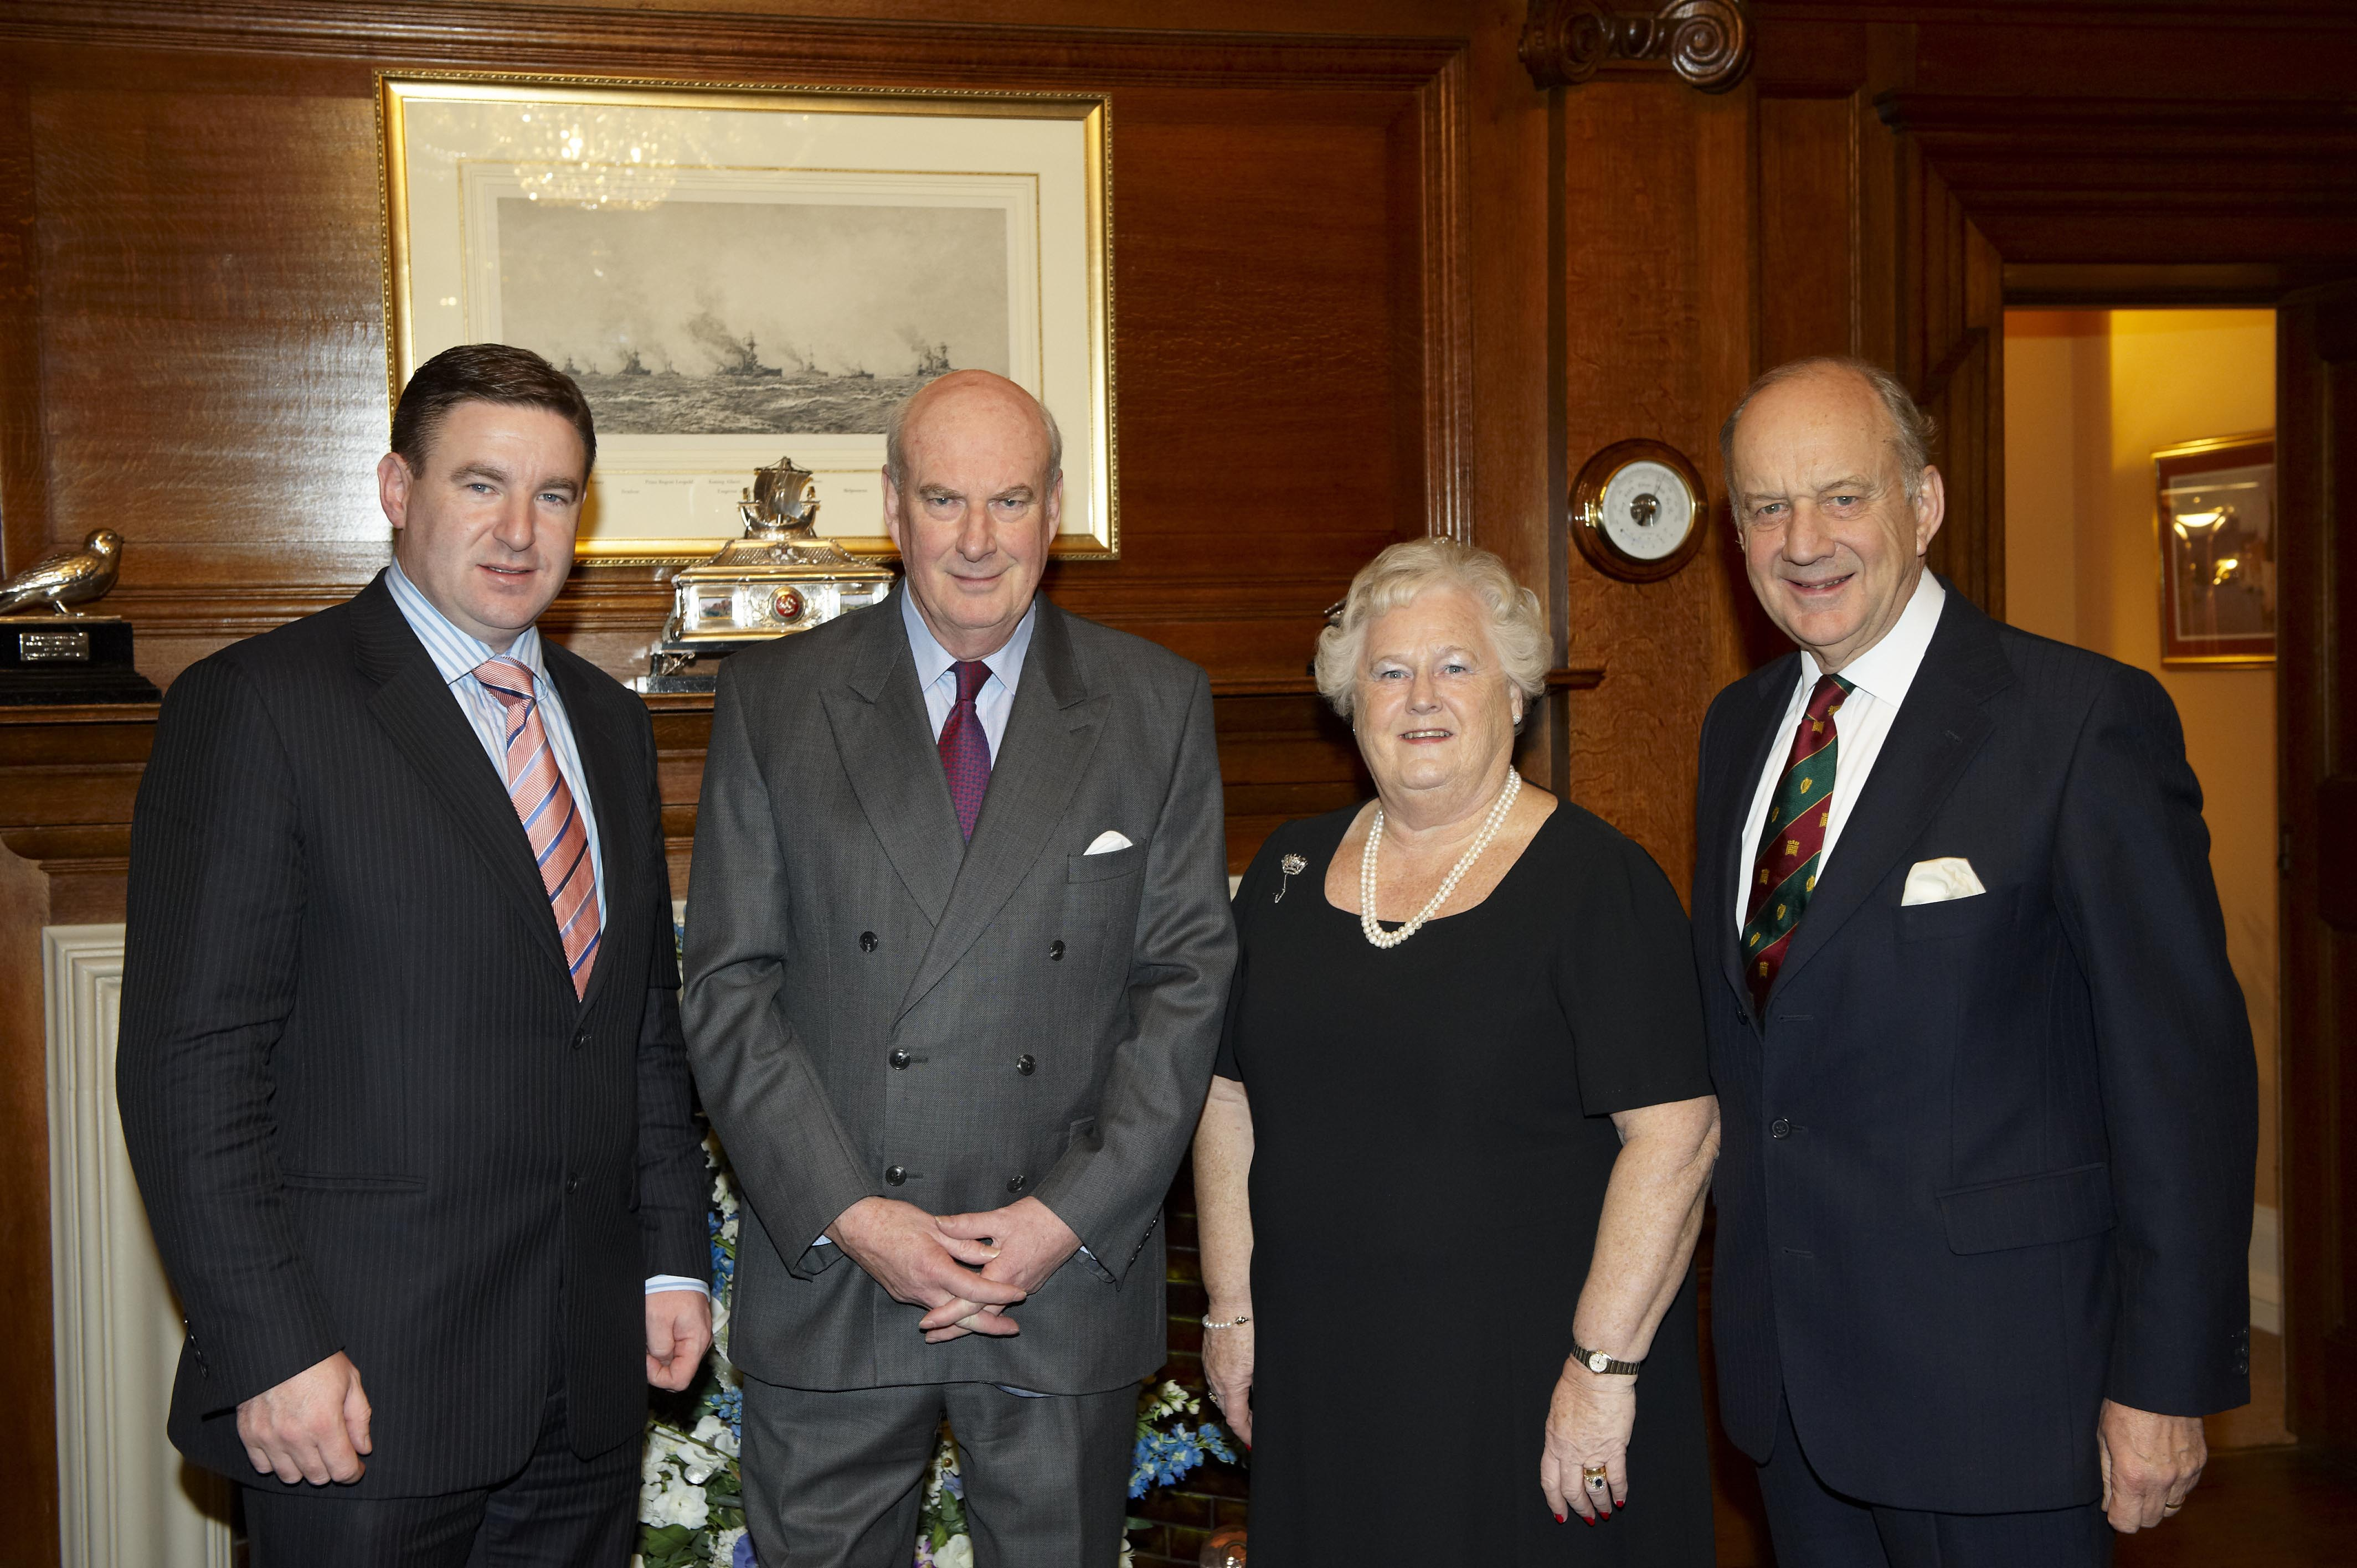 BIPA Co-Chairs, Niall Blaney TD and Lord Cope of Berkeley, meet the Lieutenant Governor of the Isle of Man, Vice Admiral Sir Paul Haddacks KCB and Lady Haddacks